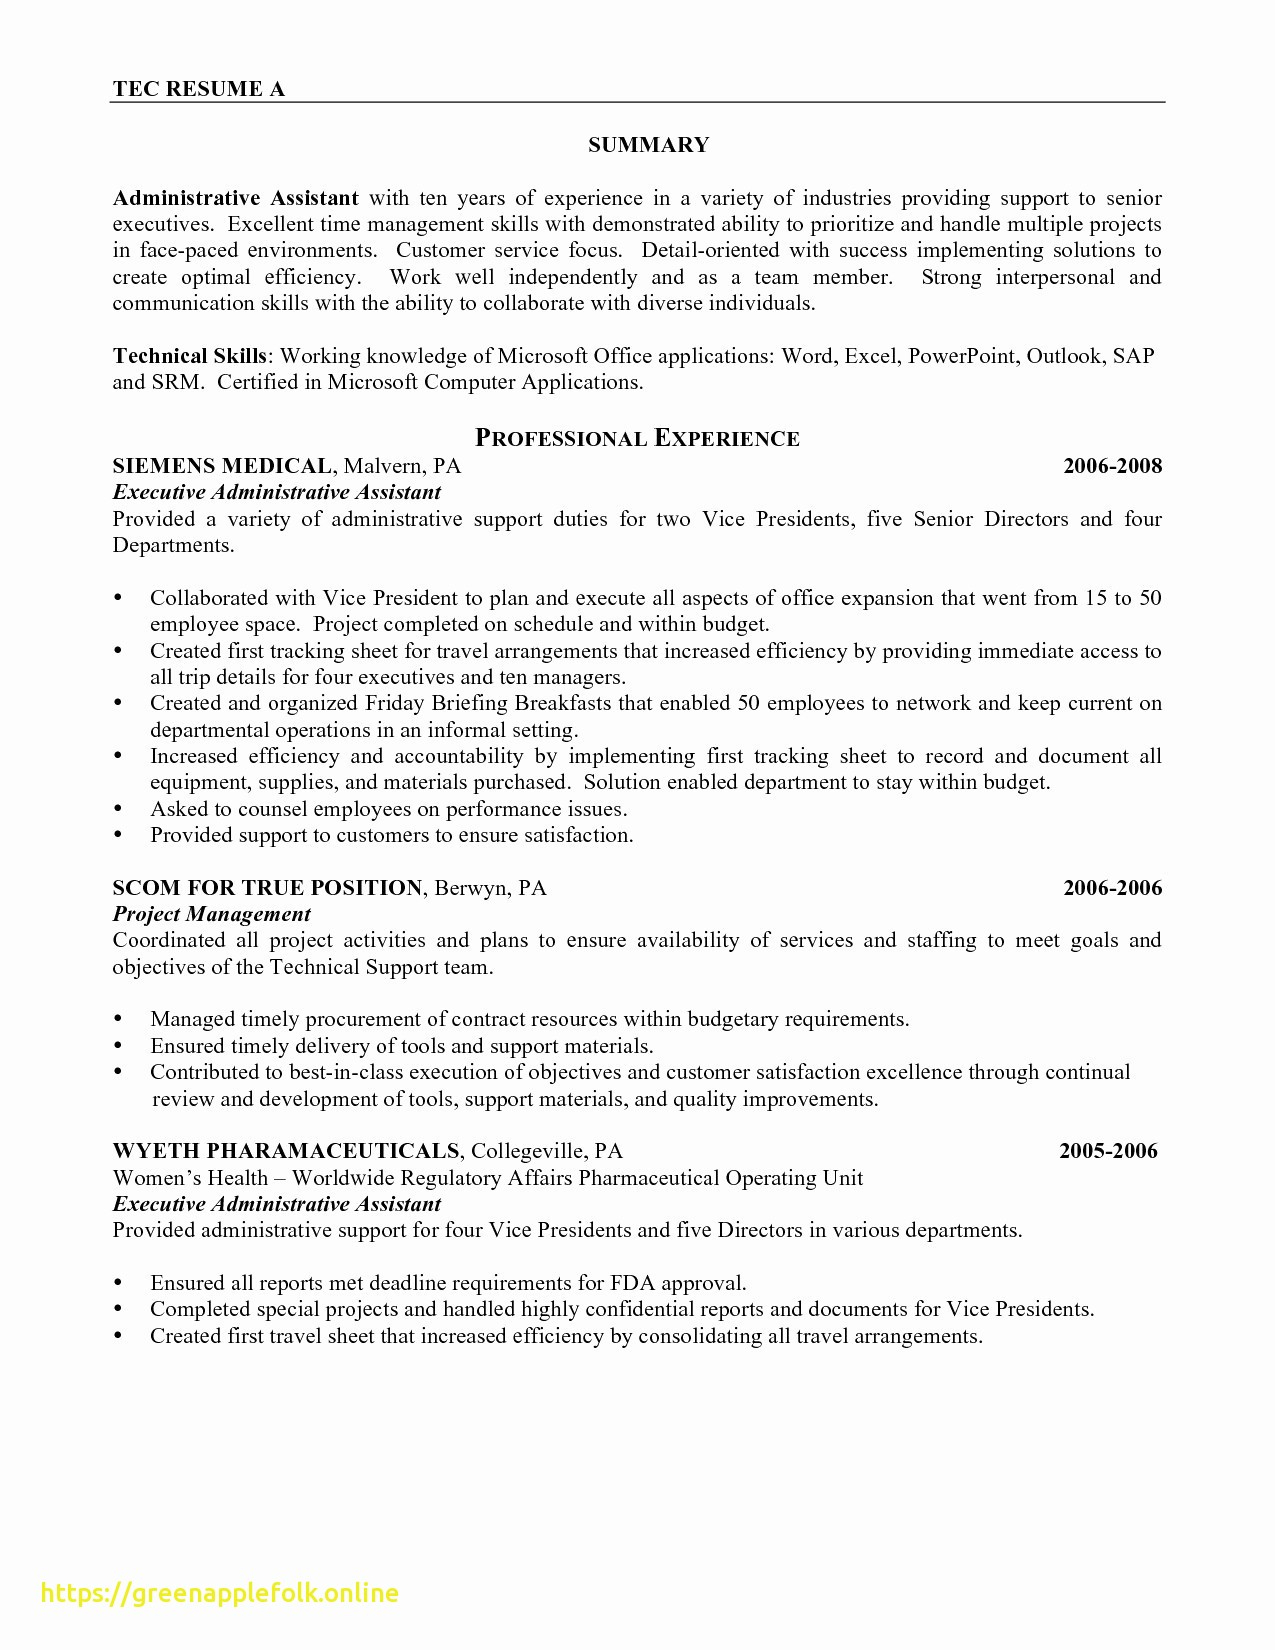 Service Industry Resume Example - New What Industry is Graphic Design